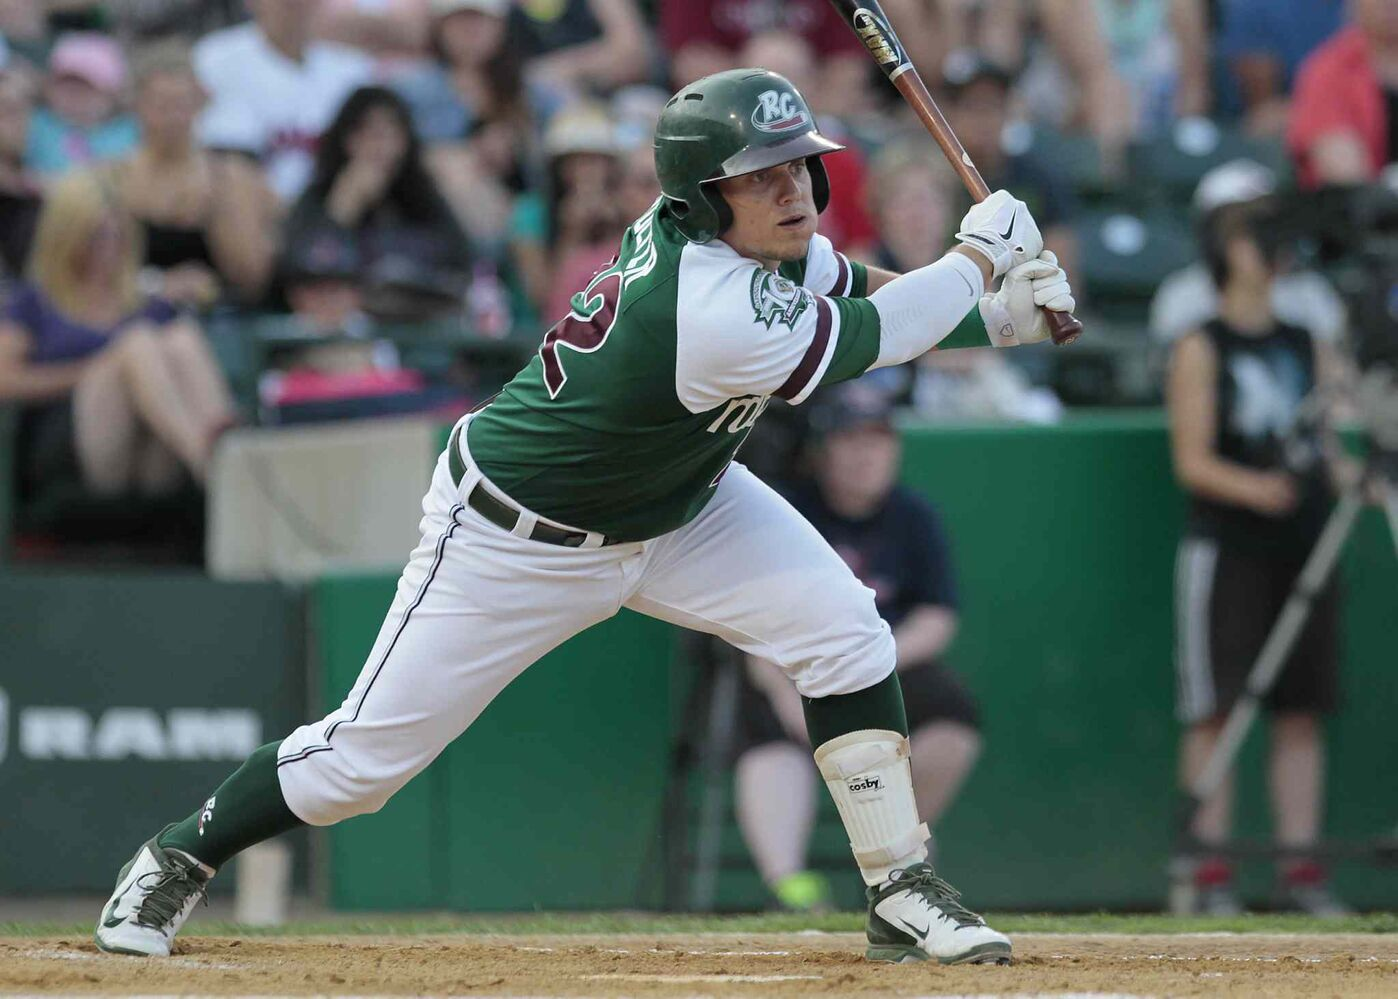 Gary SouthShore RailCats' Danny Pulfer hits in the 2014 American Association All-Star game in Winnipeg Tuesday. (John Woods / Winnipeg Free Press)